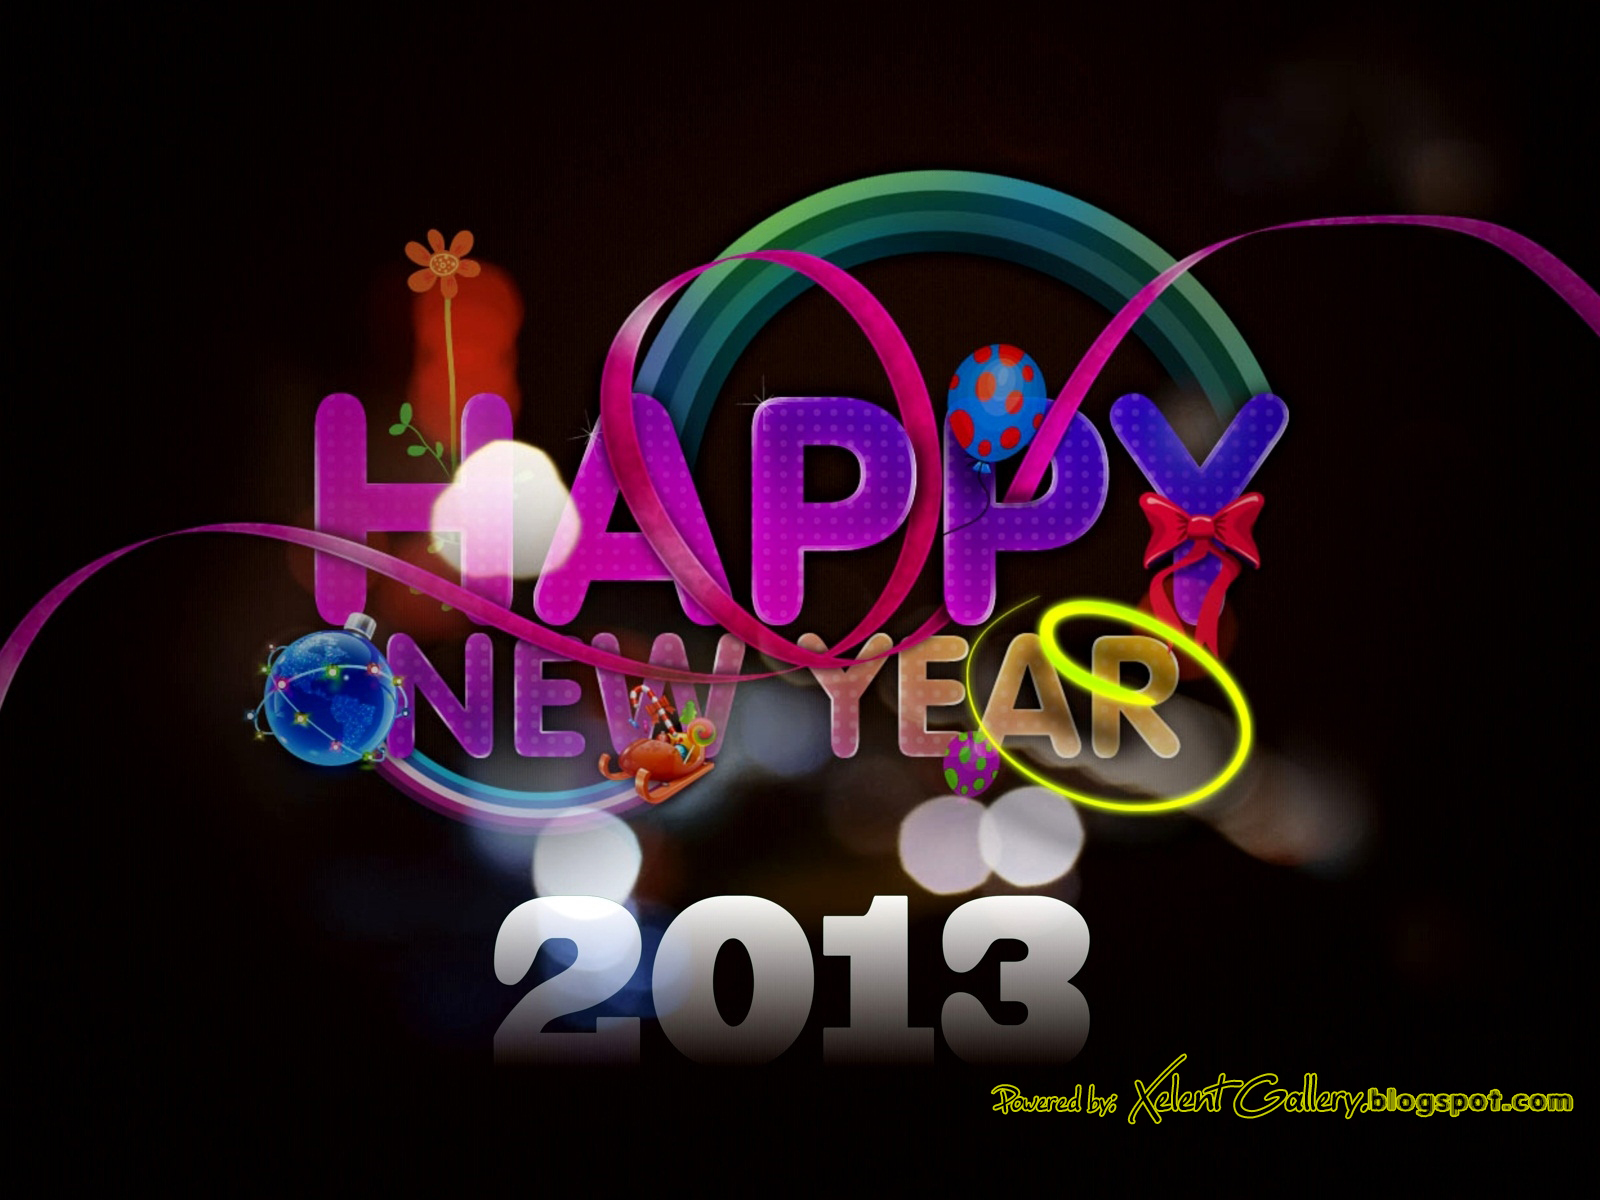 http://2.bp.blogspot.com/-mbOqstXP_58/UNyEQlieyBI/AAAAAAAACBU/N27Xg9VGdnI/s1600/Happy+New+Year+2013+HD+Wallpapers+(14).JPG